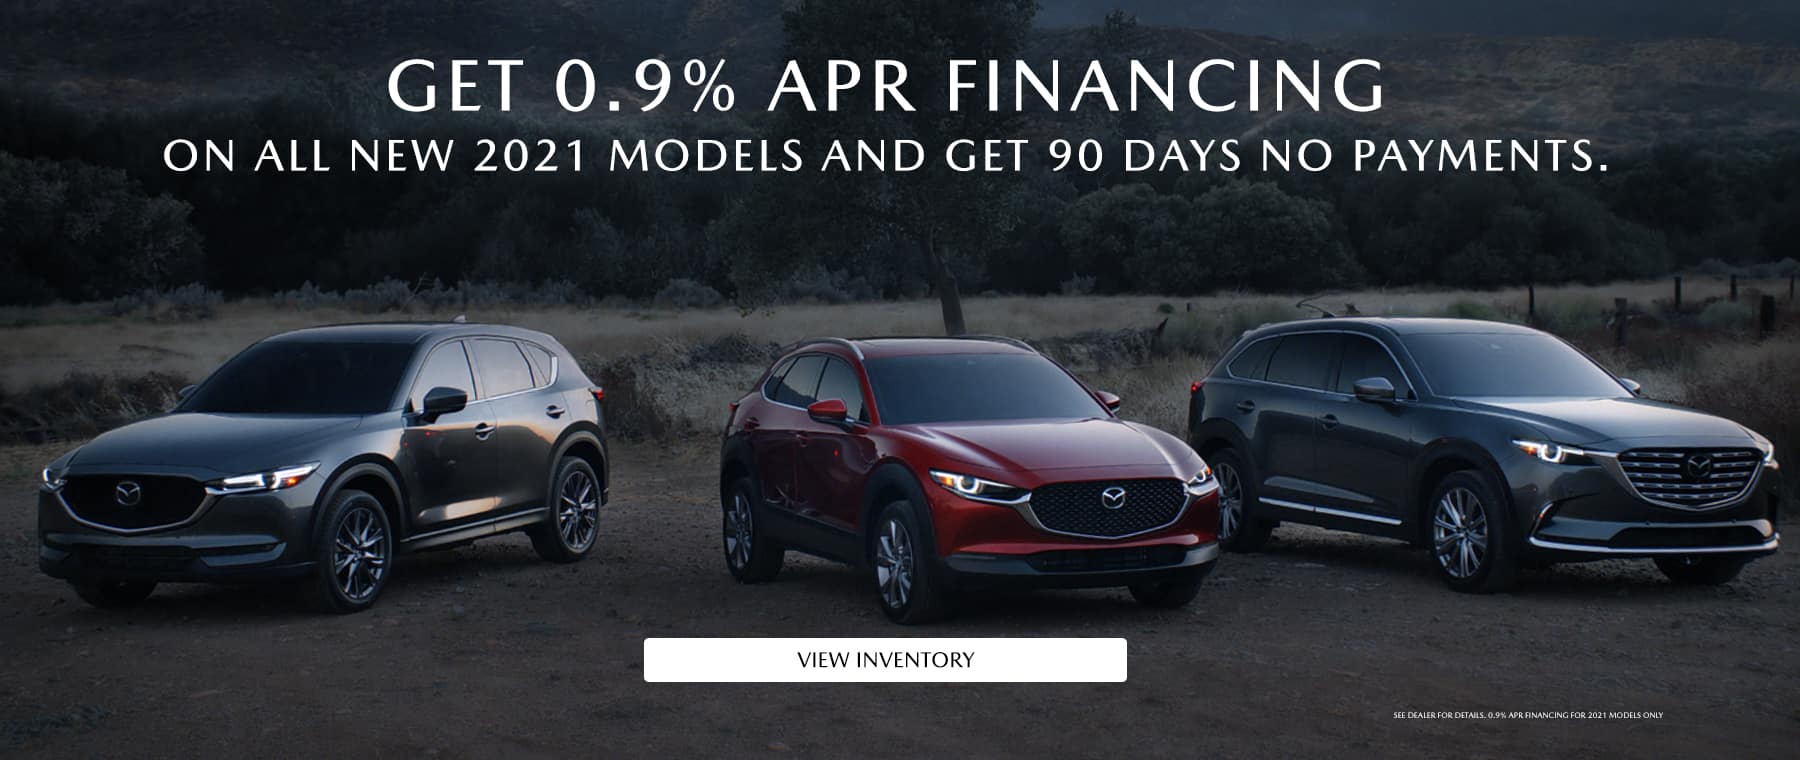 Get 0.9% APR financing on all new 2021 models